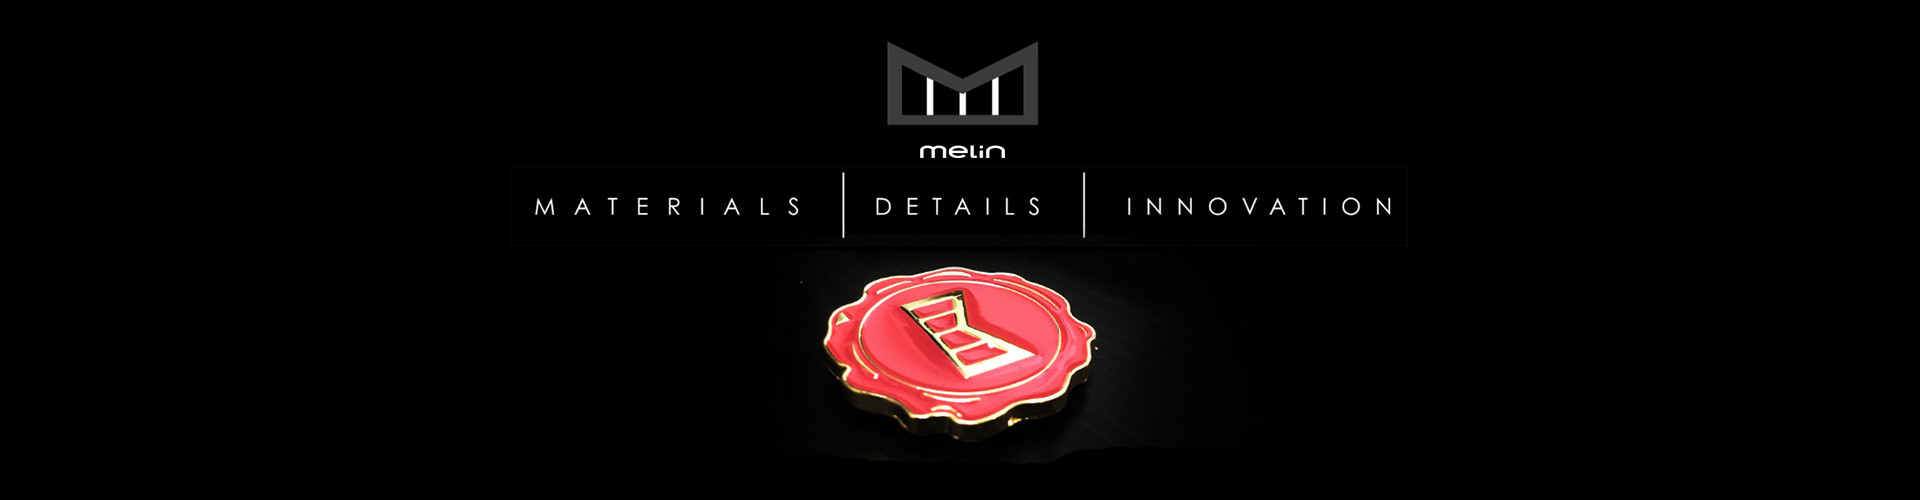 Introducing-Melin-Brand-2